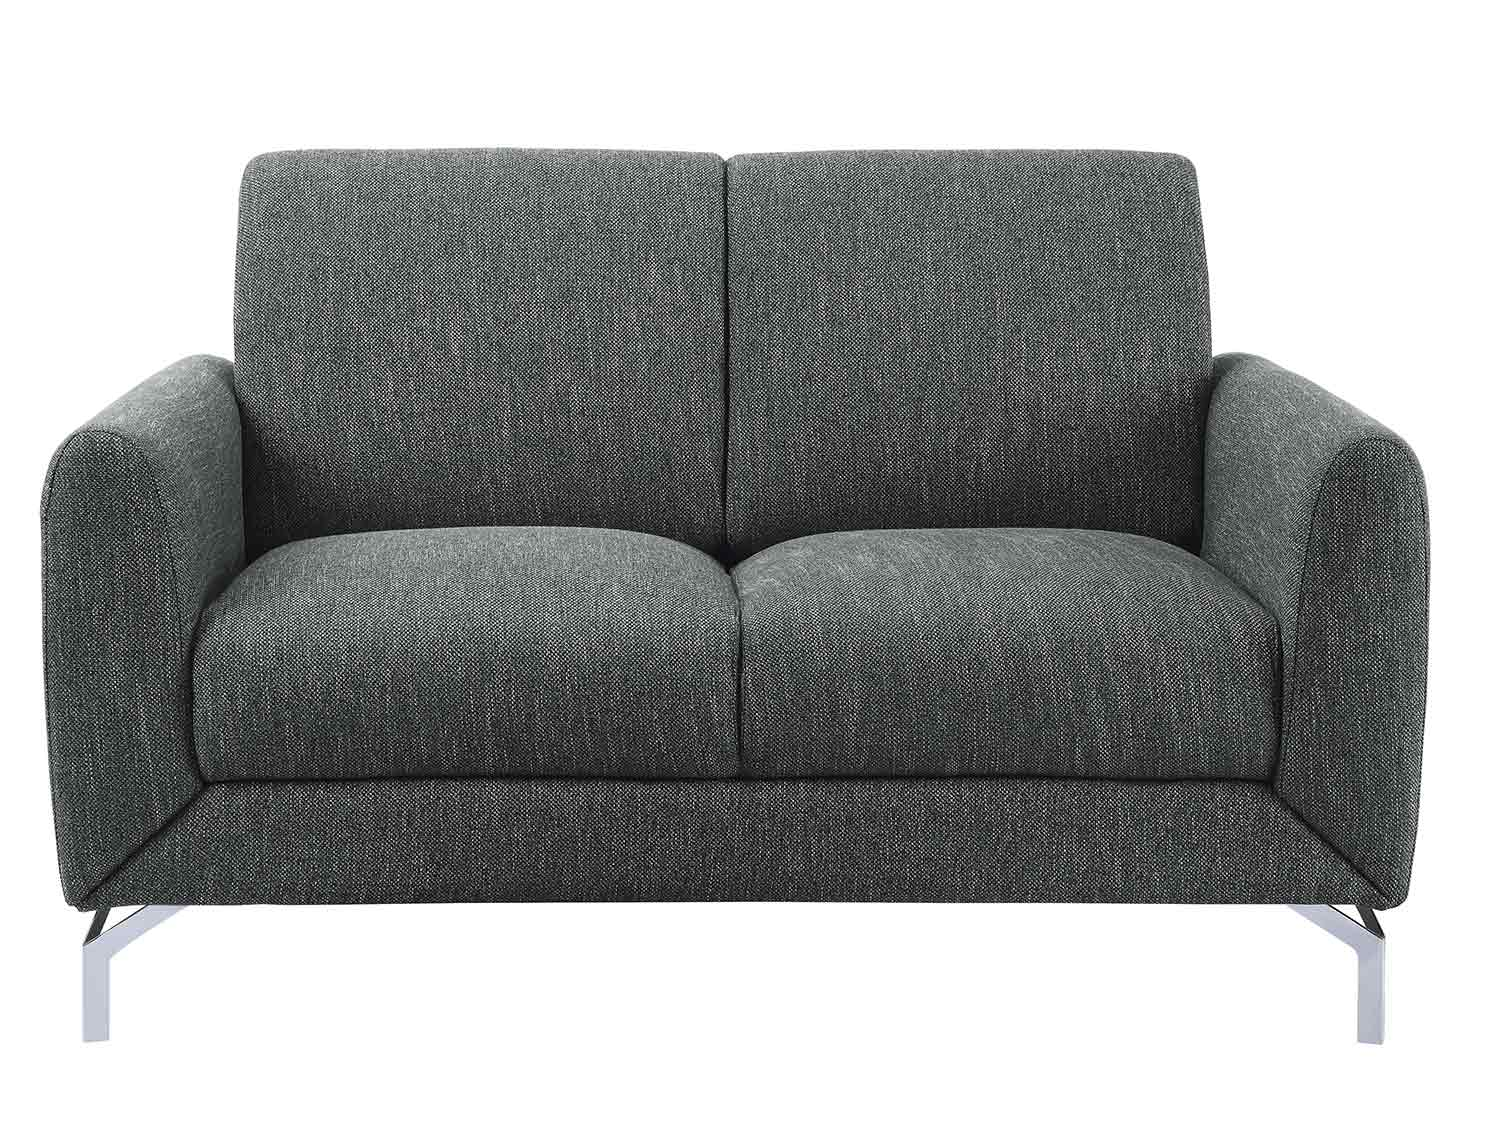 Homelegance Venture Love Seat - Dark gray